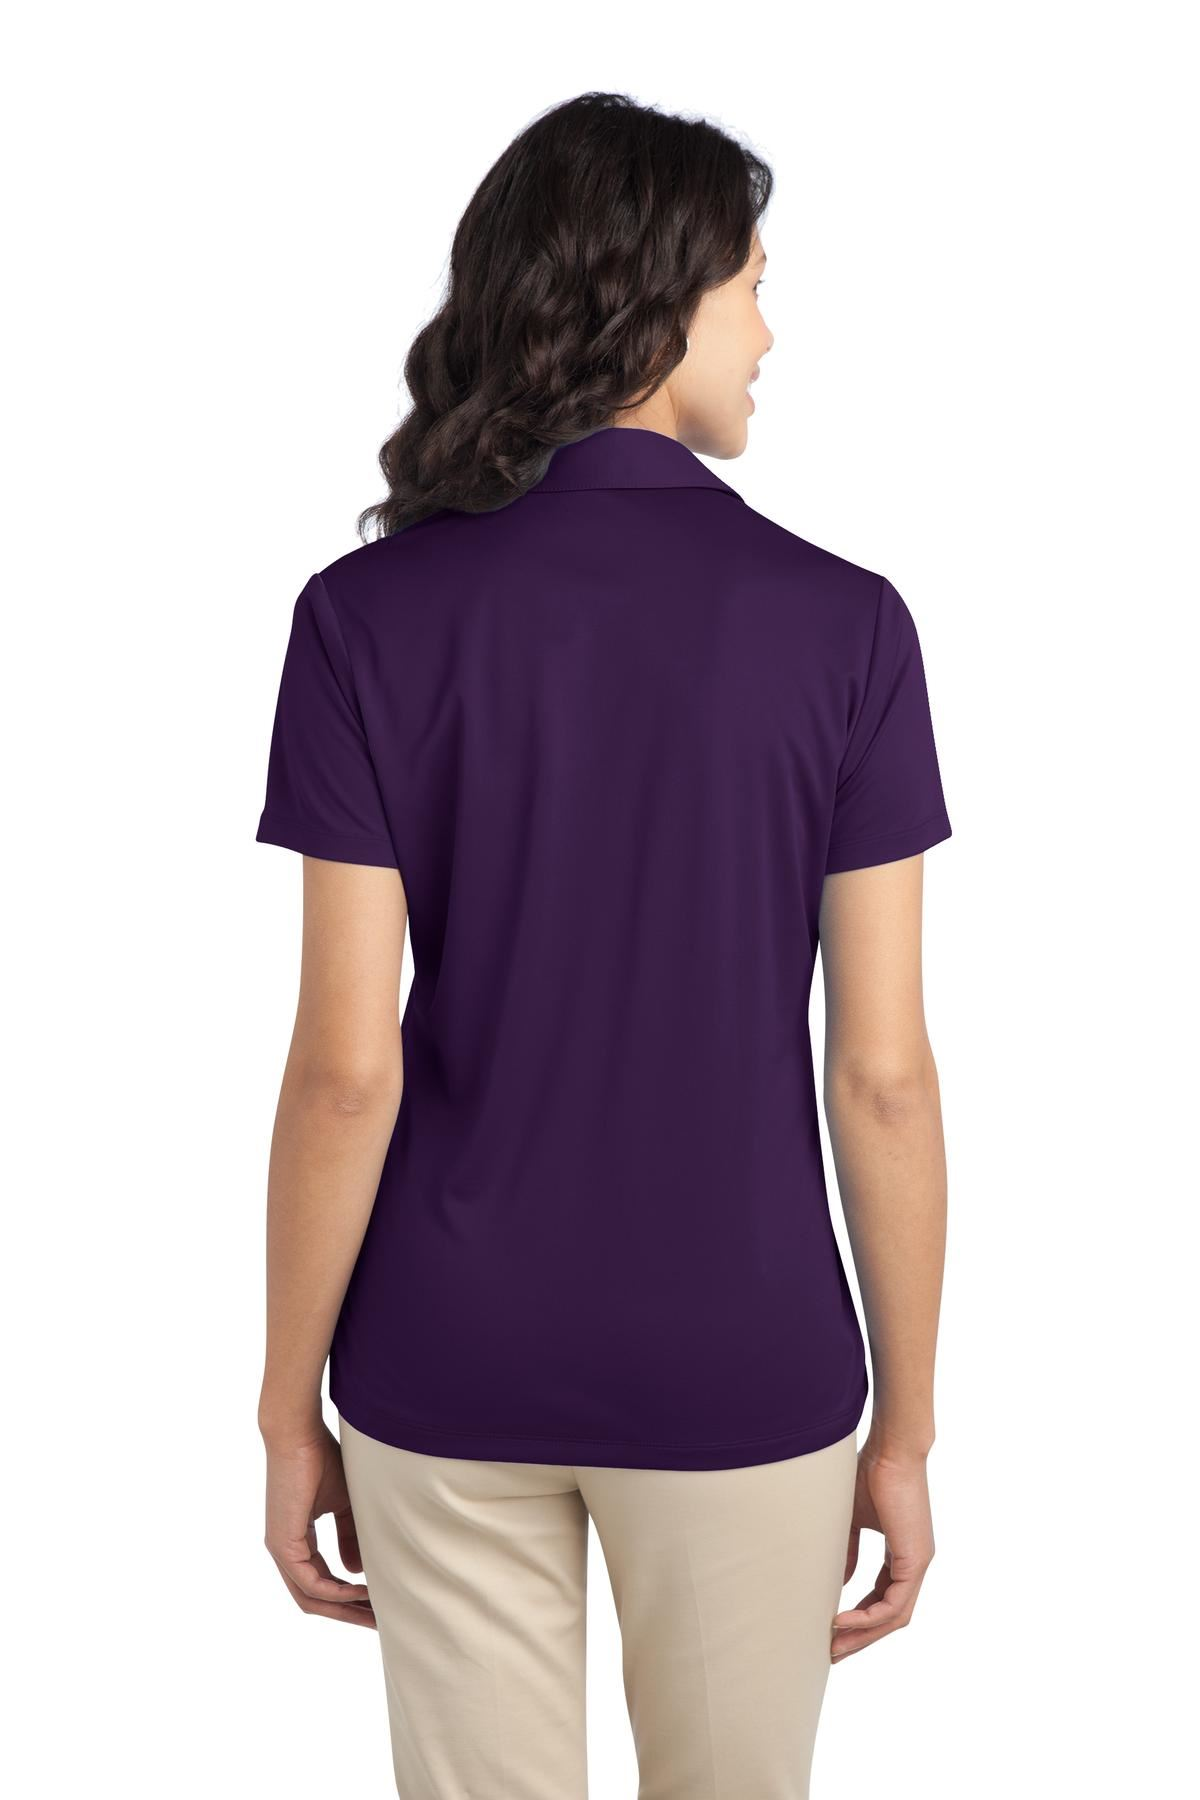 Port-Authority-Womens-Dri-Fit-SIlk-Touch-Performance-Polo-Golf-Shirt-M-L540 thumbnail 7